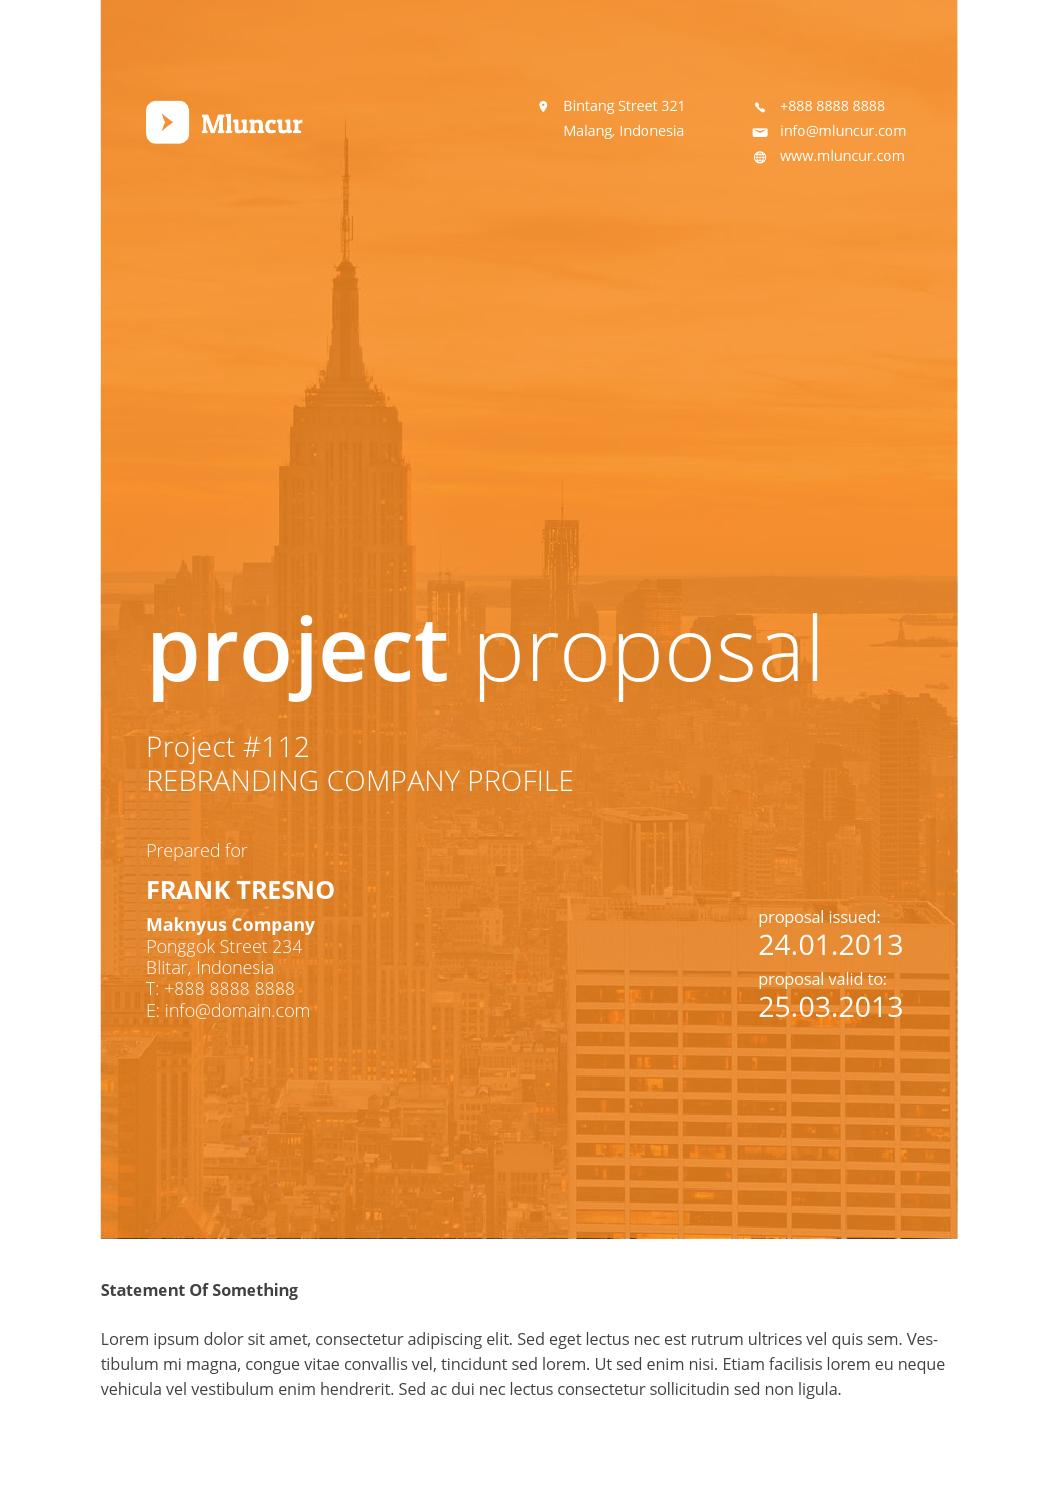 mluncur clean proposal template by cahyo issuu